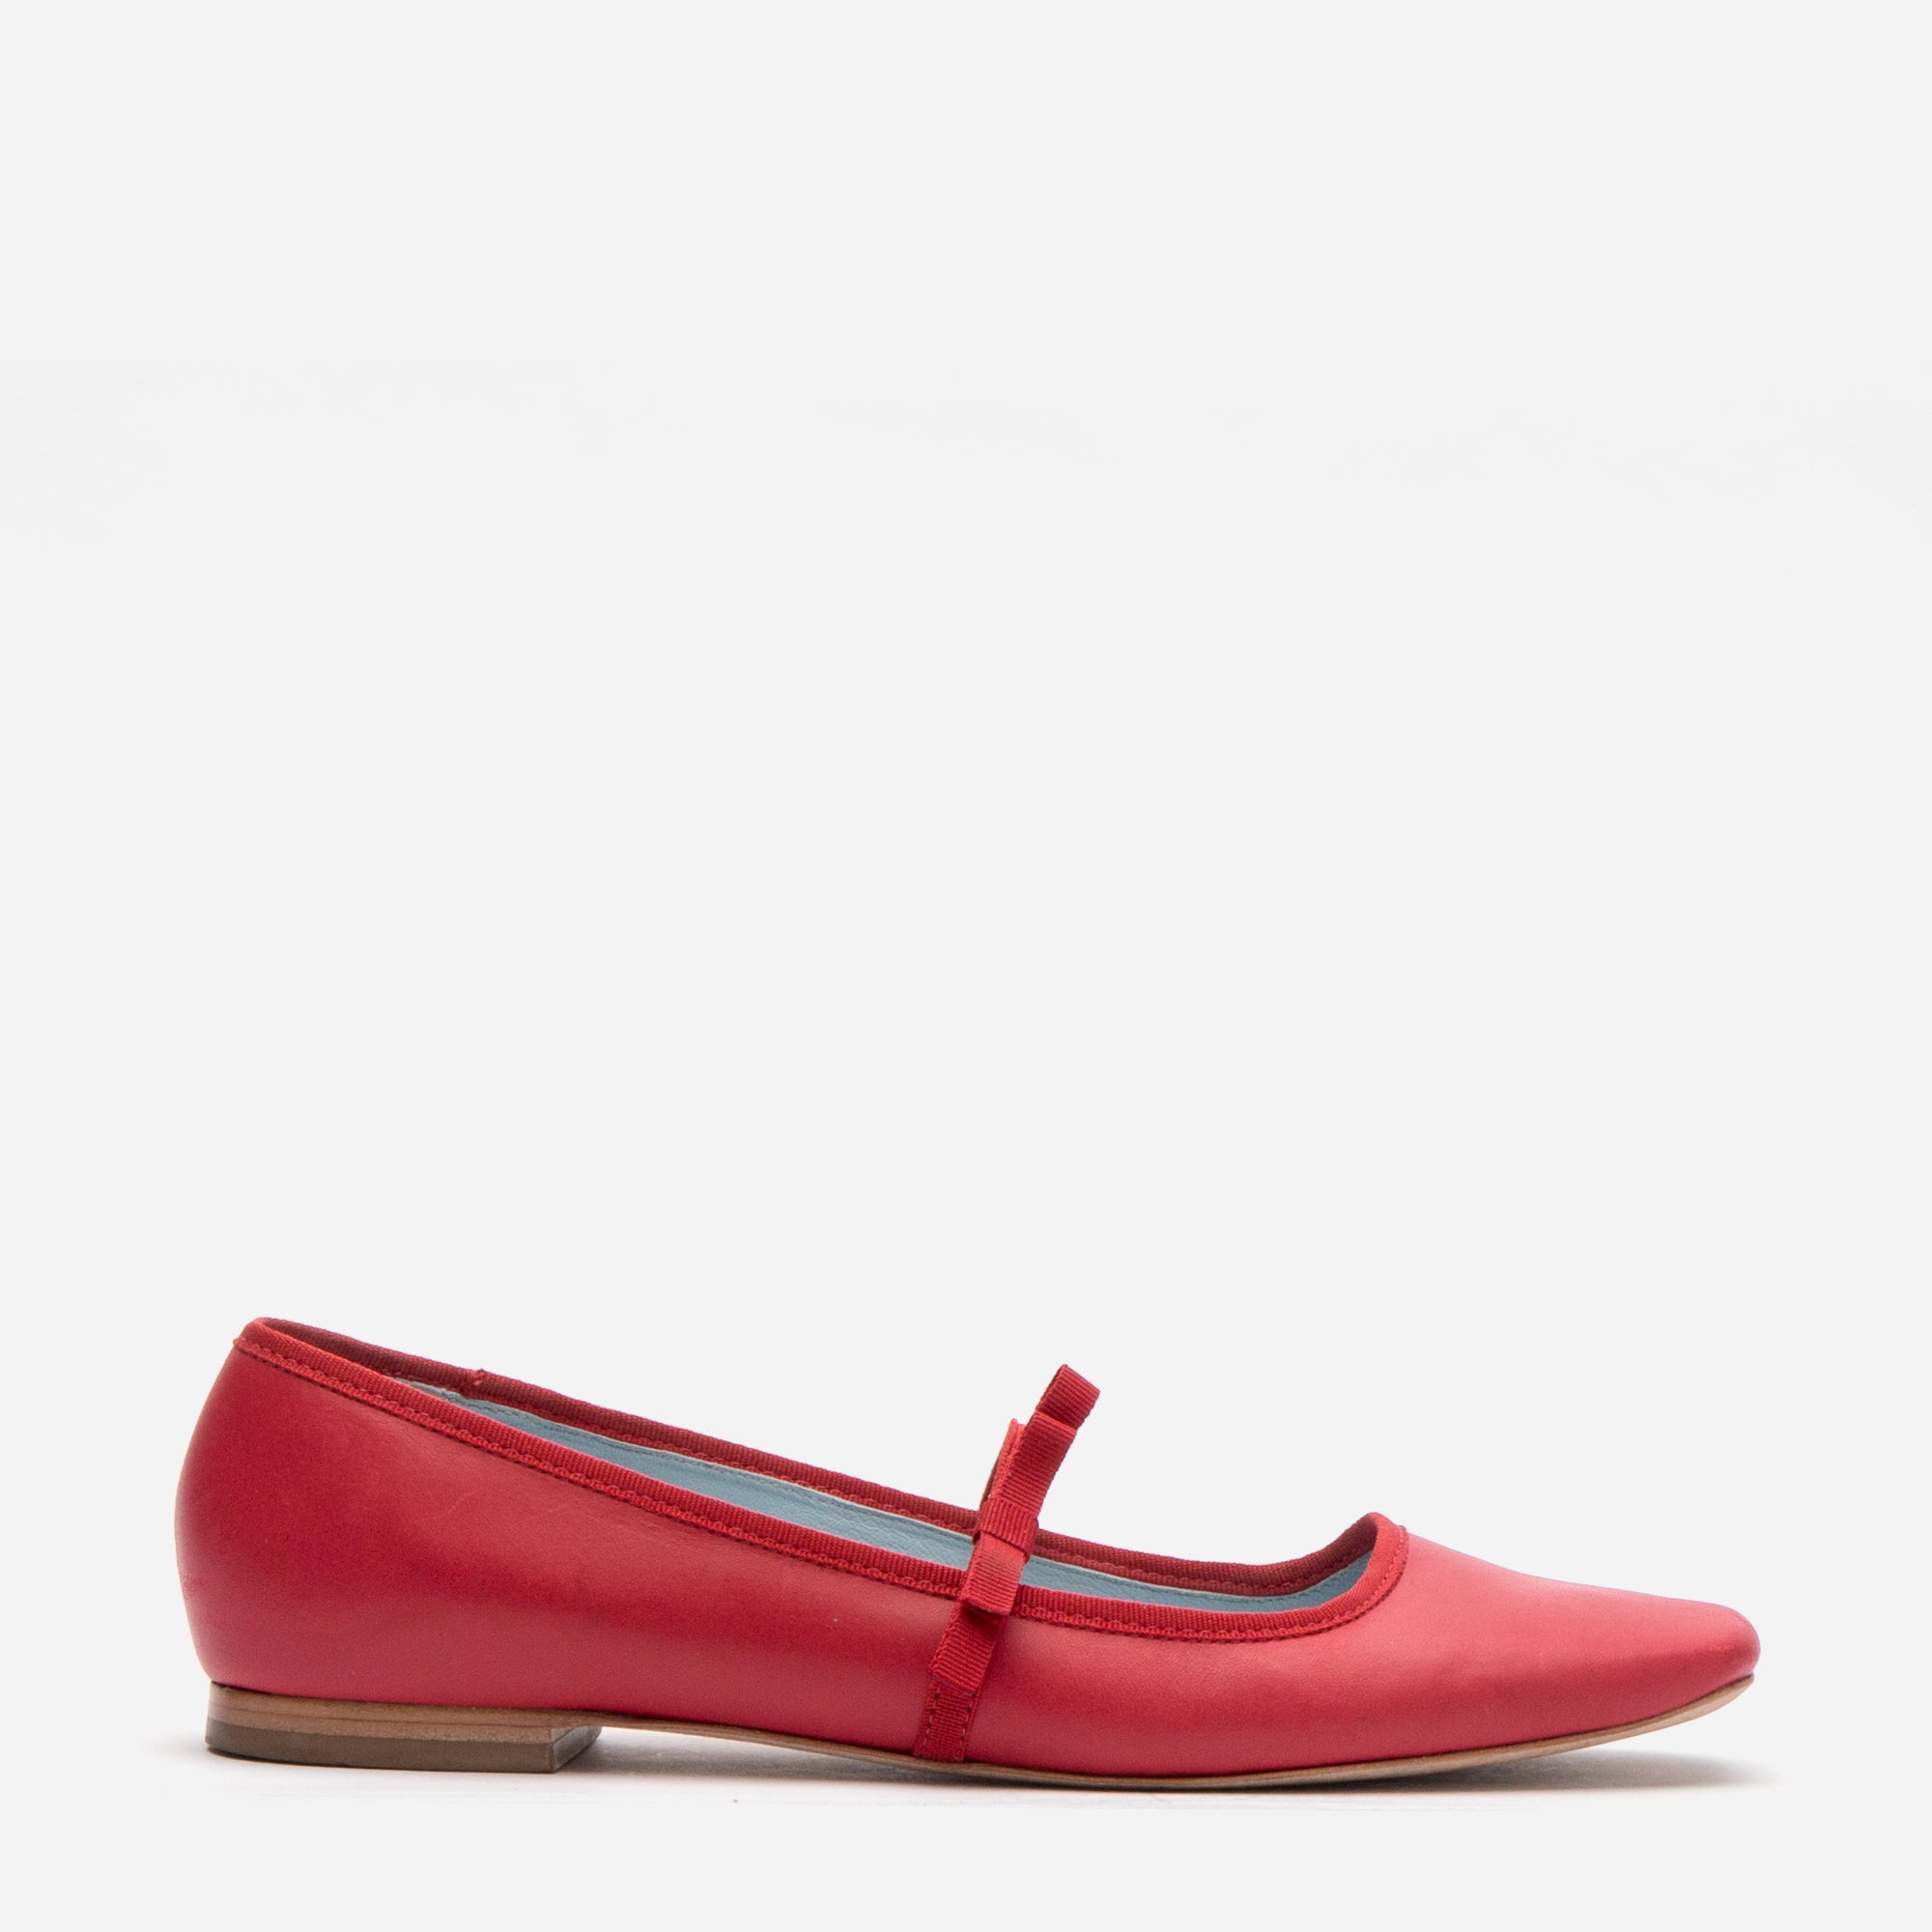 Jude Mary Jane Leather Flats Red